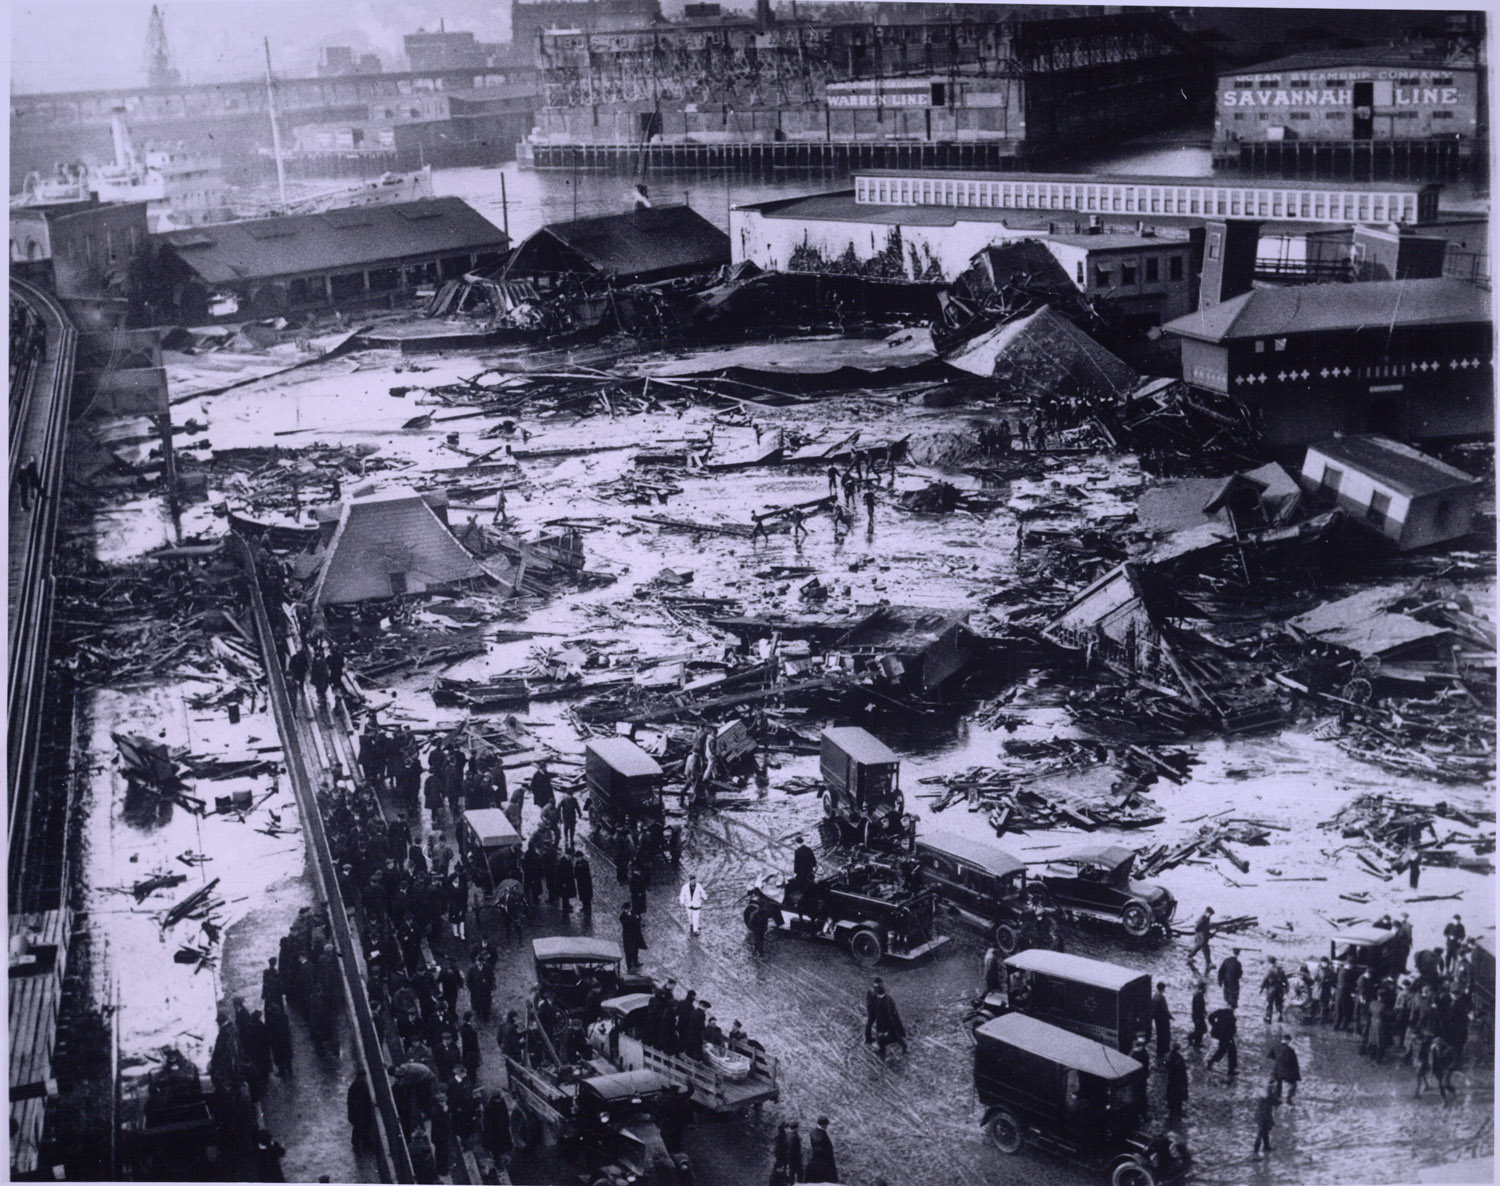 Great Molasses Flood site photographed on the day of the disaster in Boston's North End, January 15, 1919